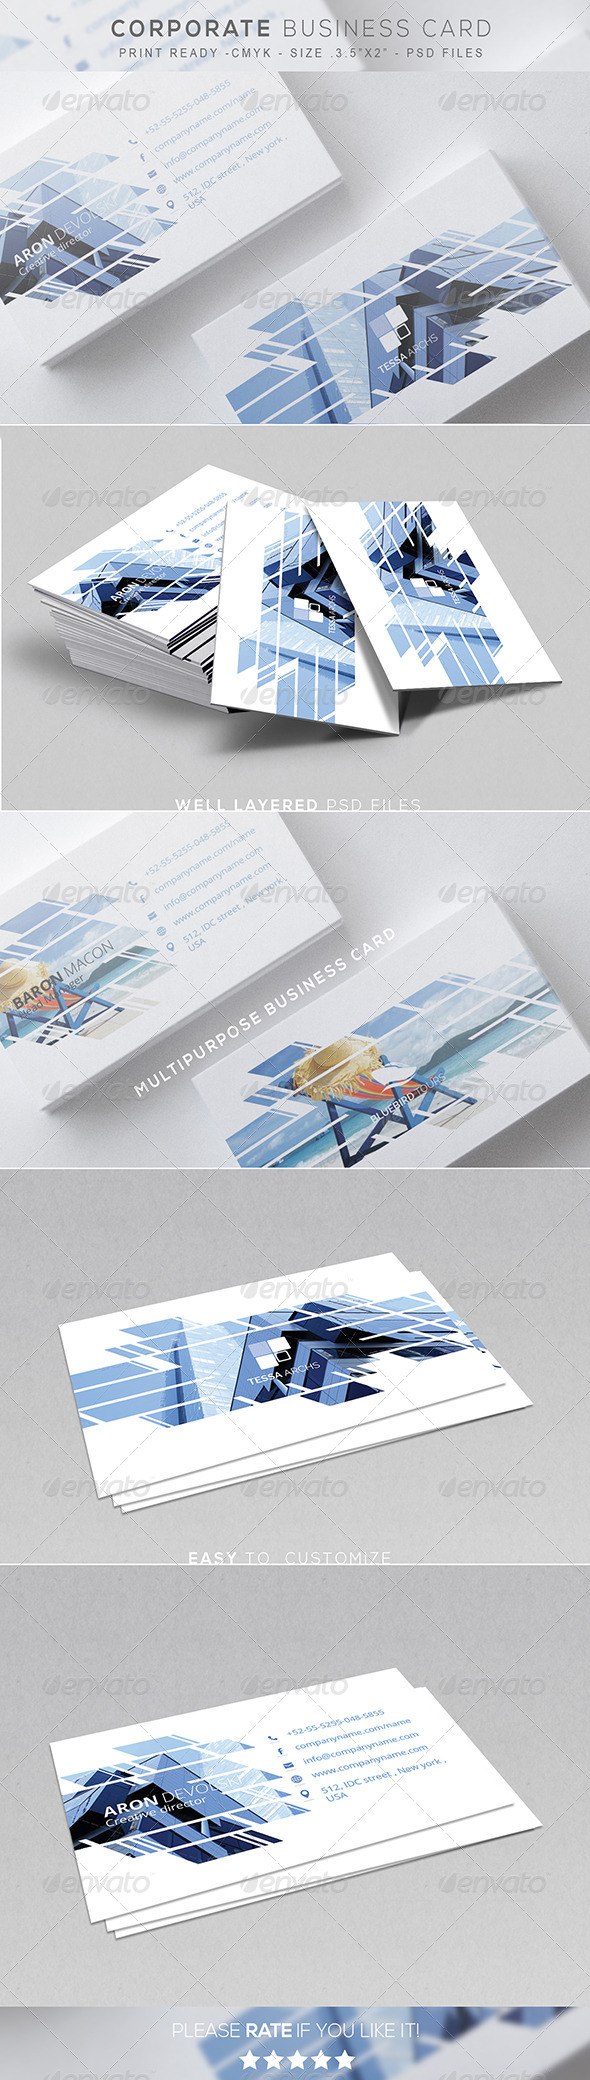 GraphicRiver Corporate Business Card 7801397